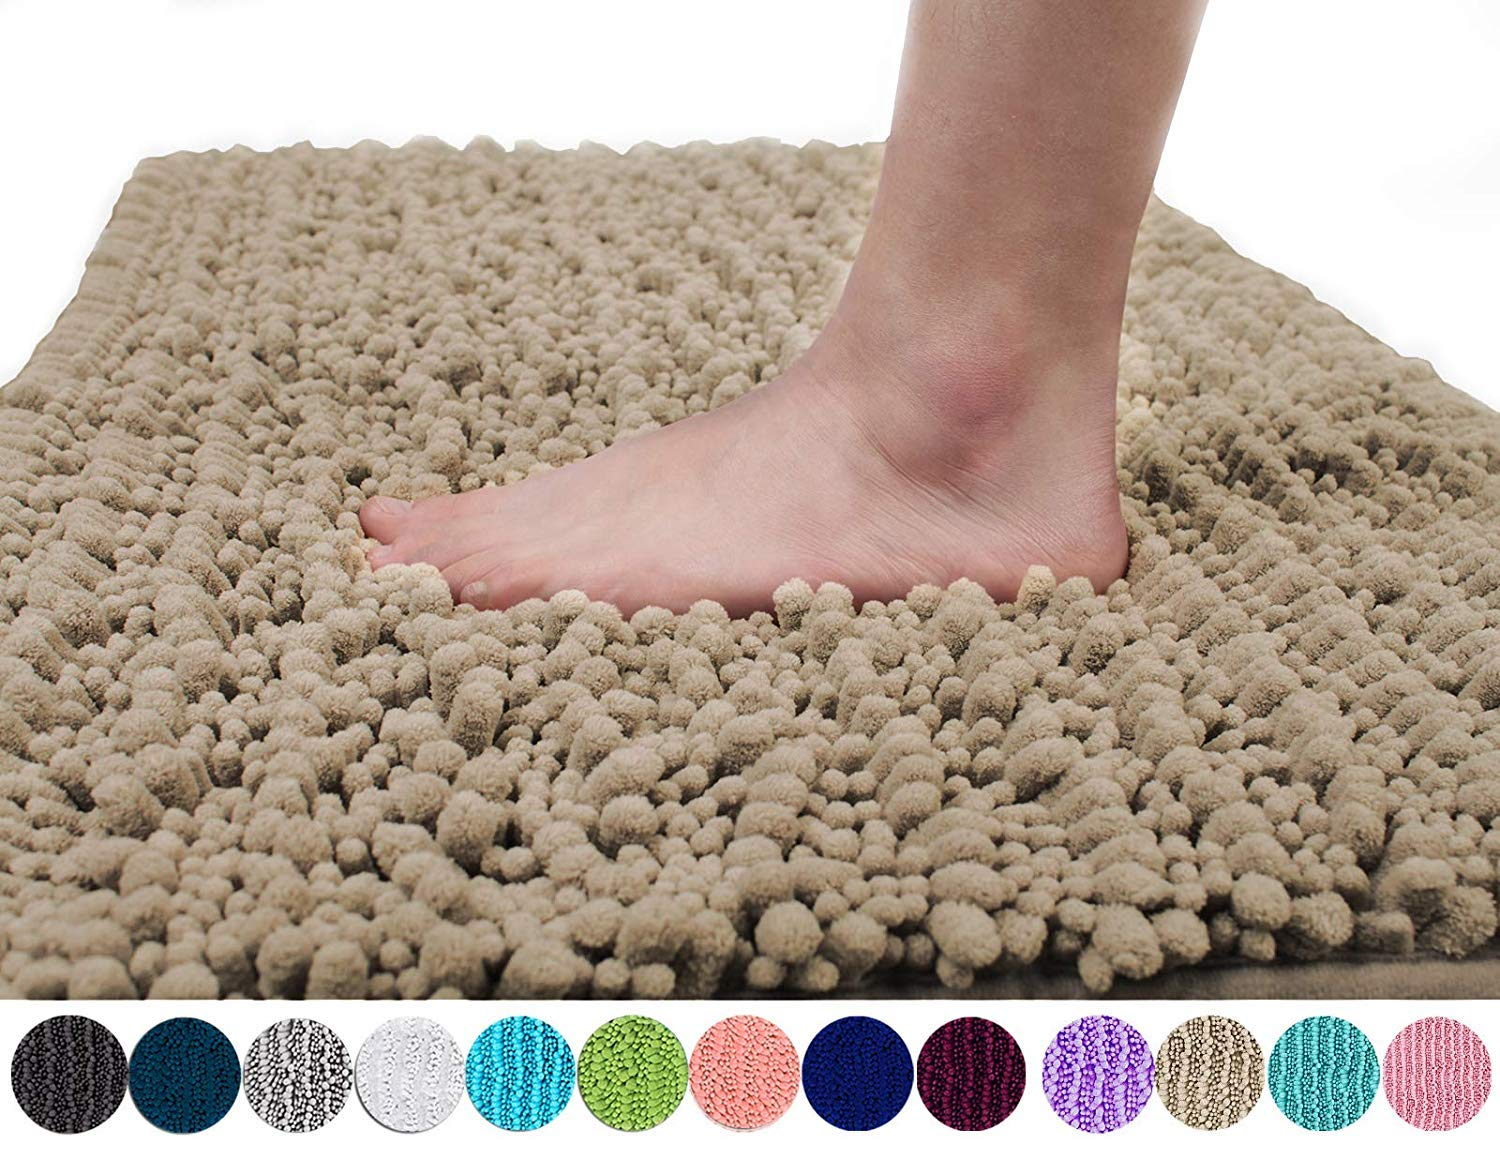 Yimobra Original Luxury Shaggy Bath Mat, Soft and Cozy, Super Absorbent Water, Non-Slip, Machine-Washable, Thick Modern for Bathroom Bedroom (24 x 17 Inch, Camel)